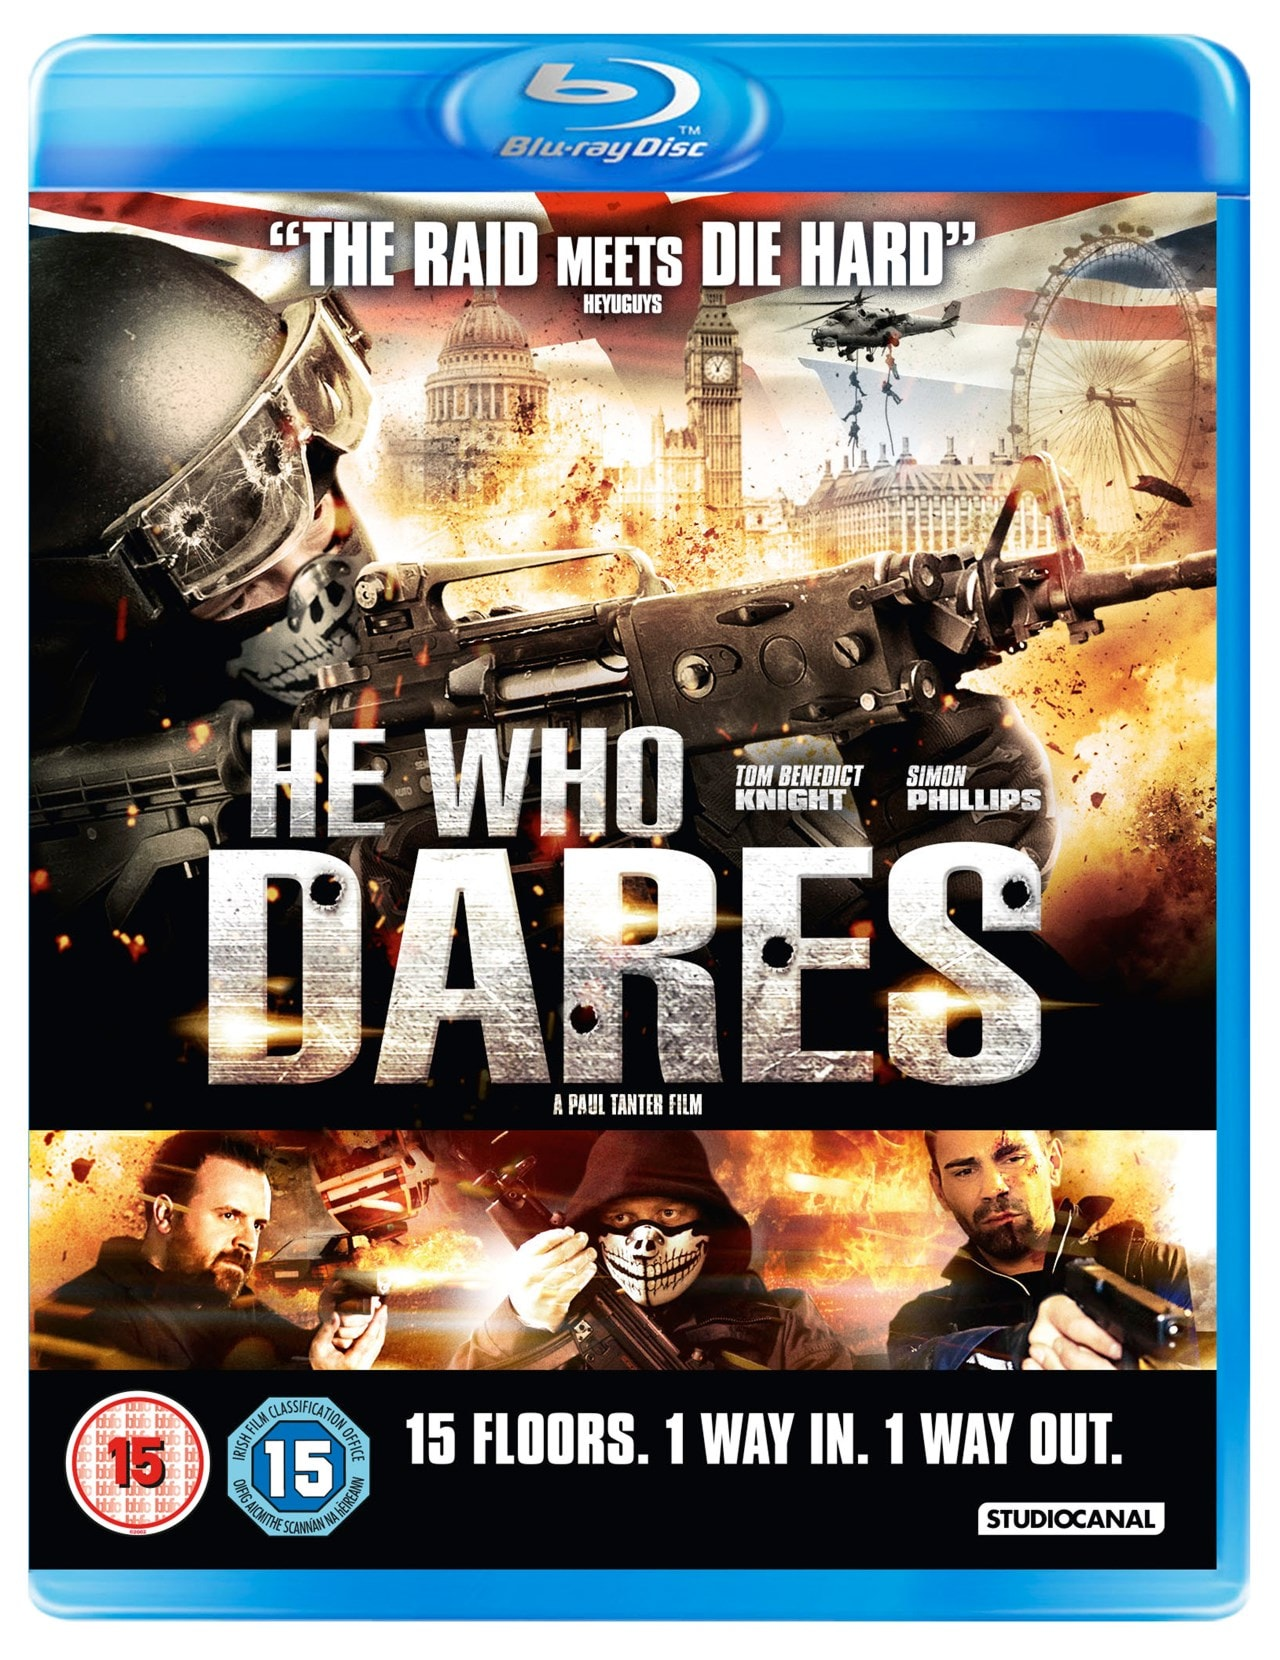 He Who Dares - 1